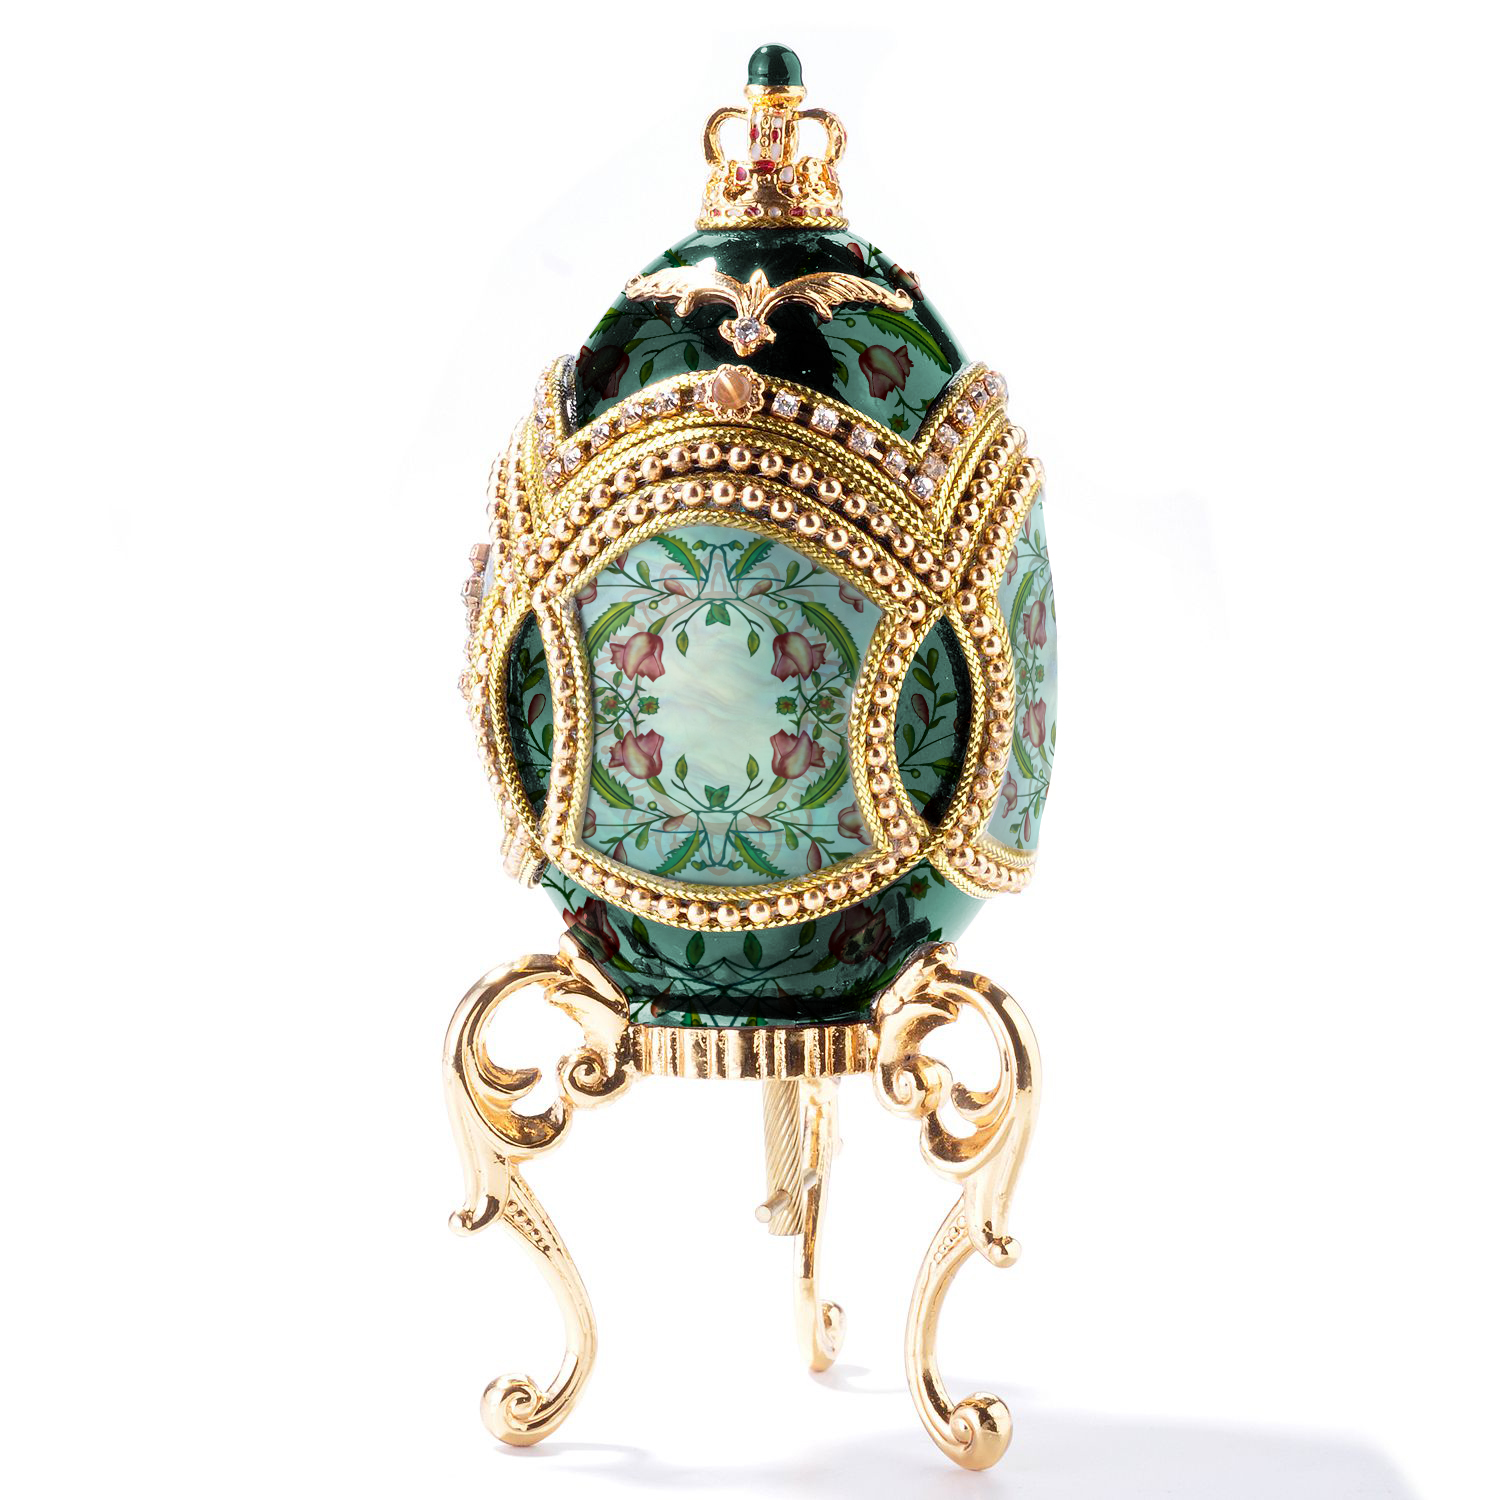 Fabergé_egg_with_pattern_and_gold_stand